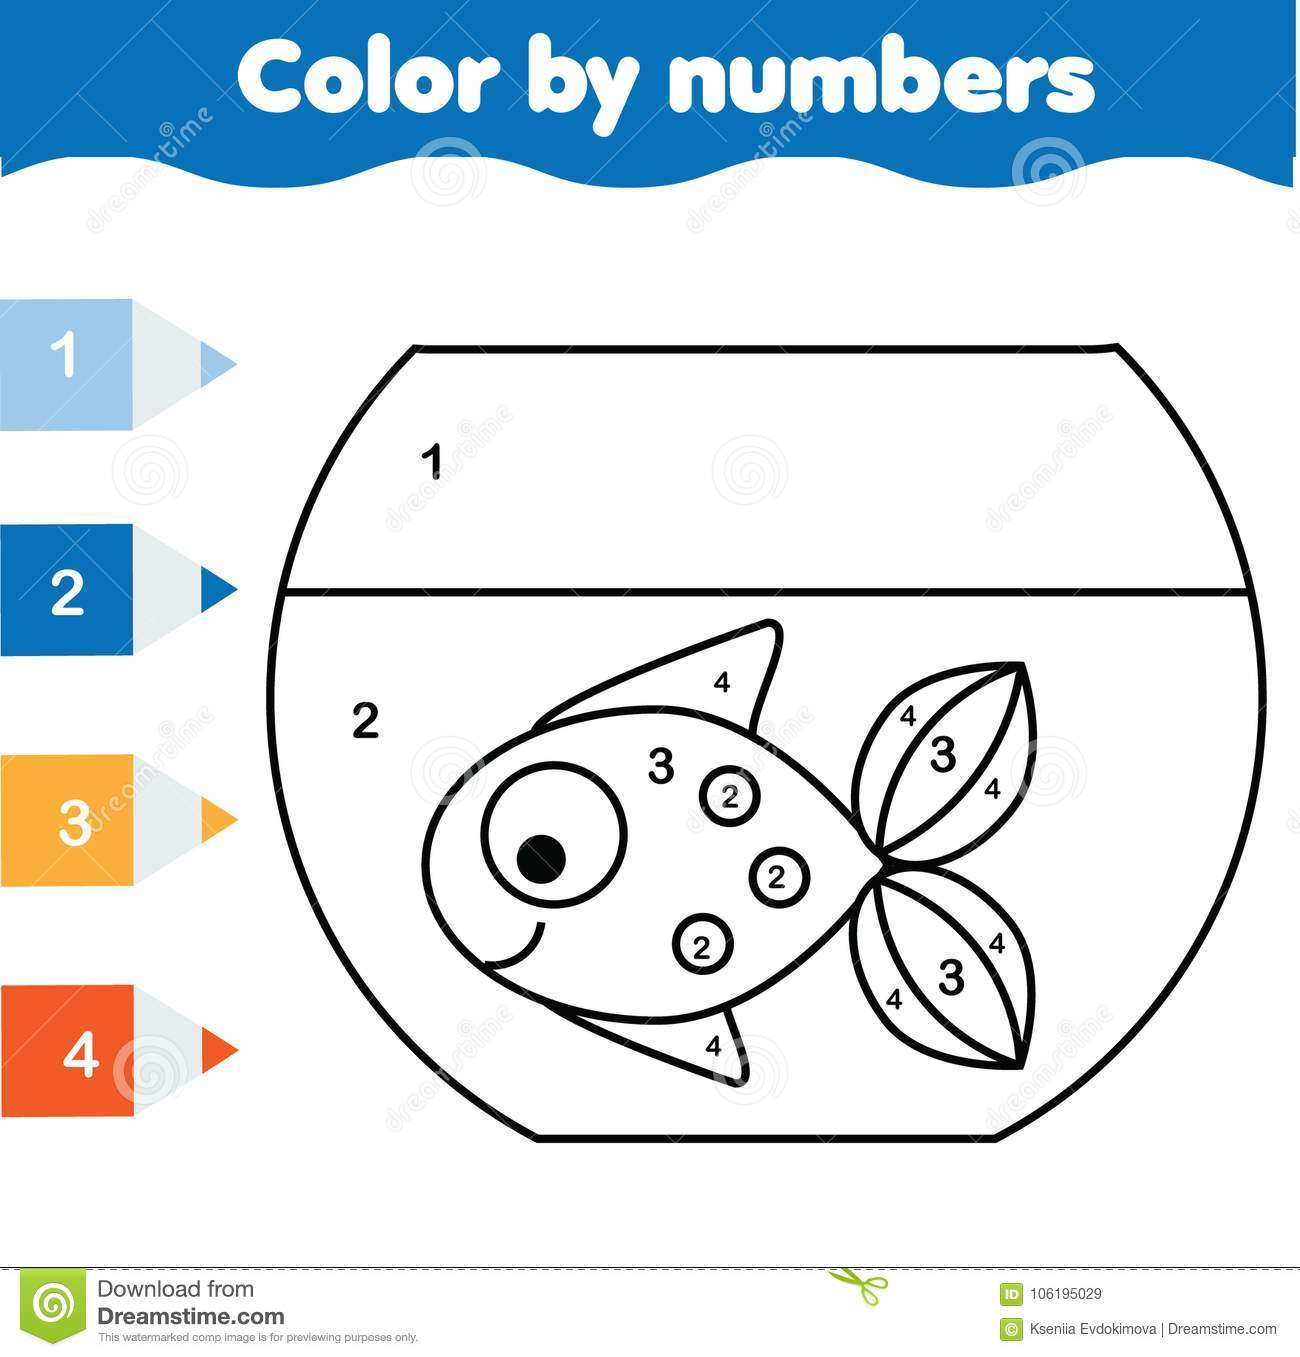 graphic about Printable Activities for Toddlers titled Little ones Useful Activity. Coloring Web page With Fish Within